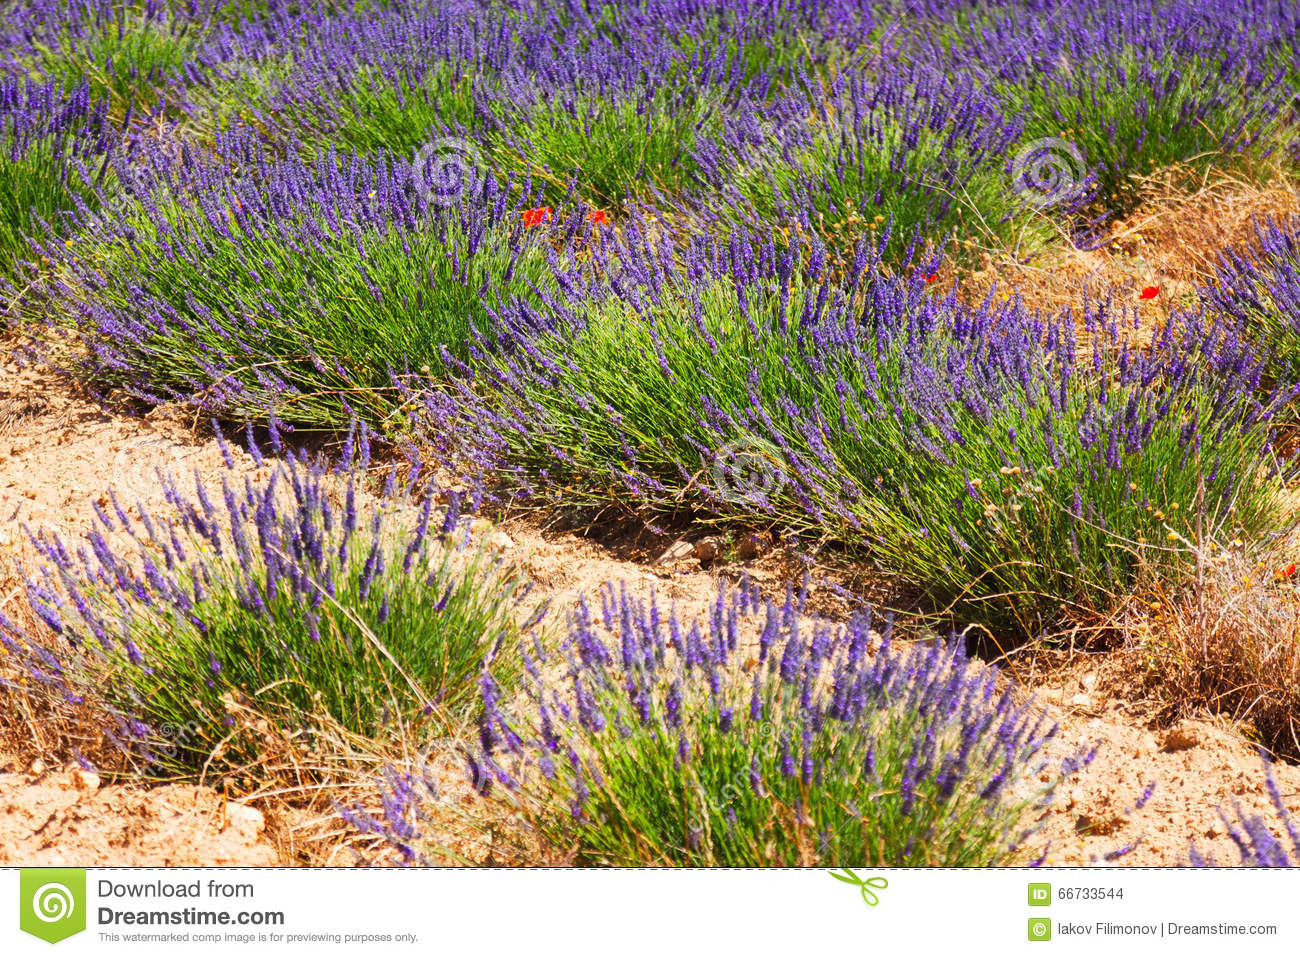 Plant of lavender at field i